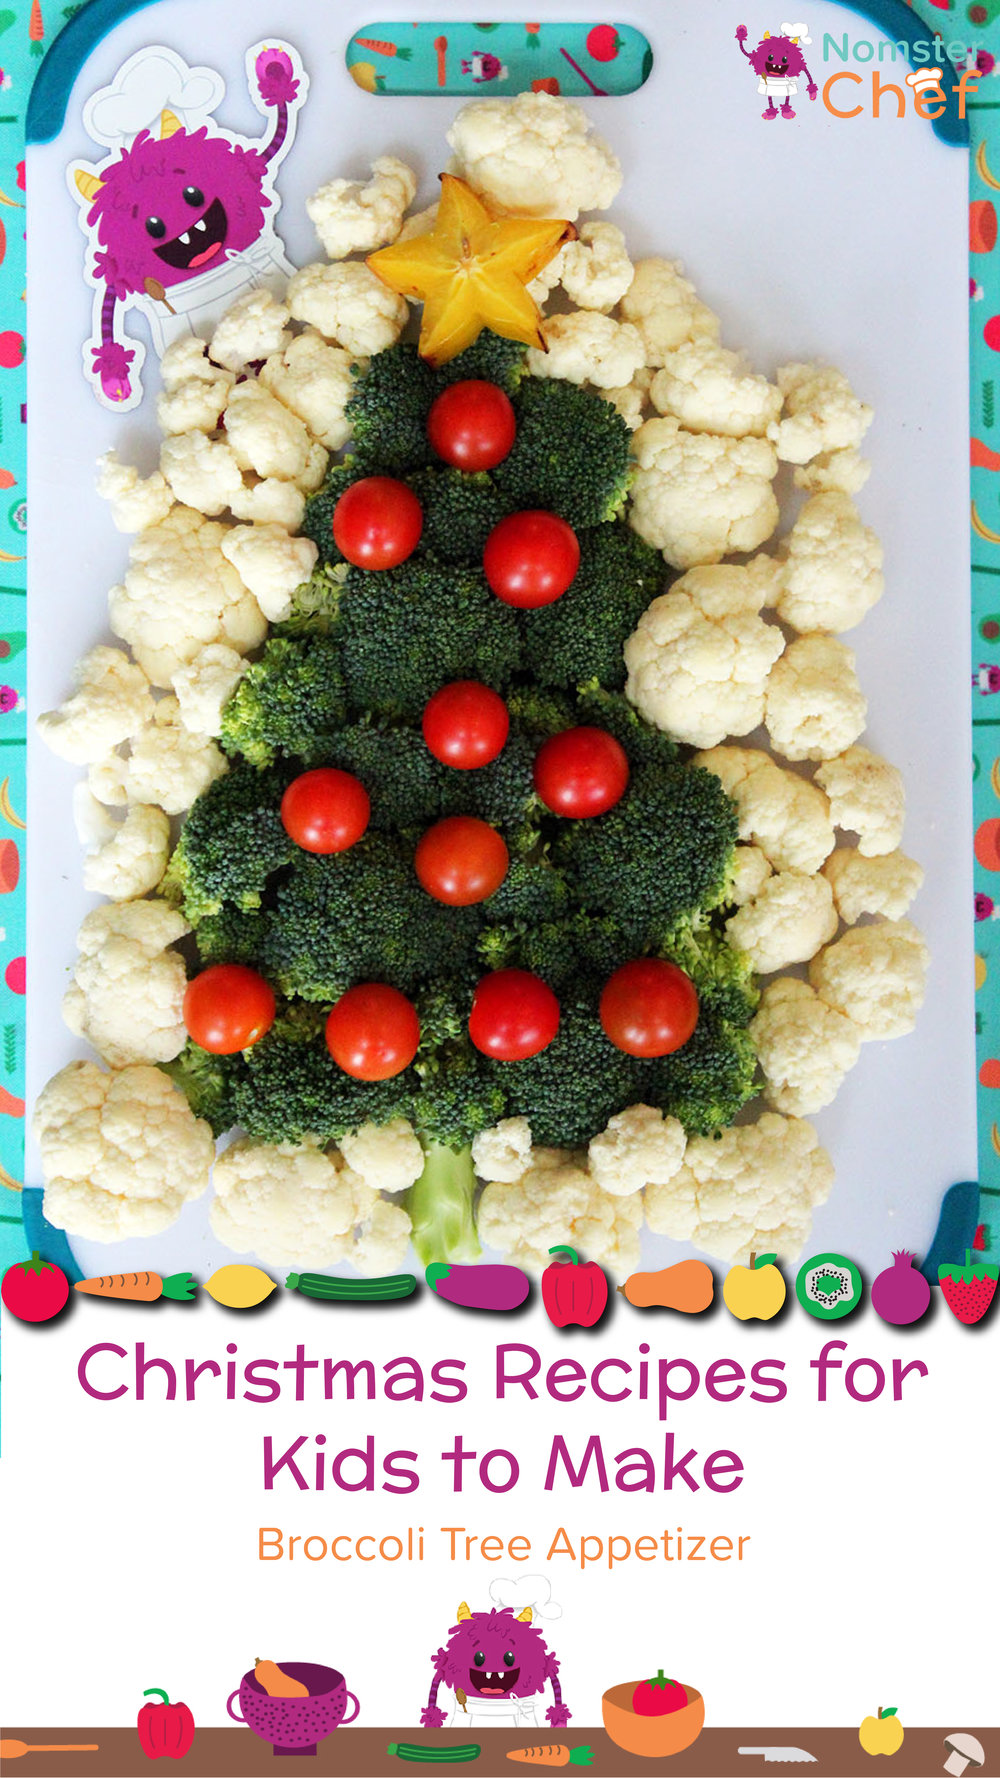 christmas recipes for kids to make broccoli tree appetizer nomster chef 01